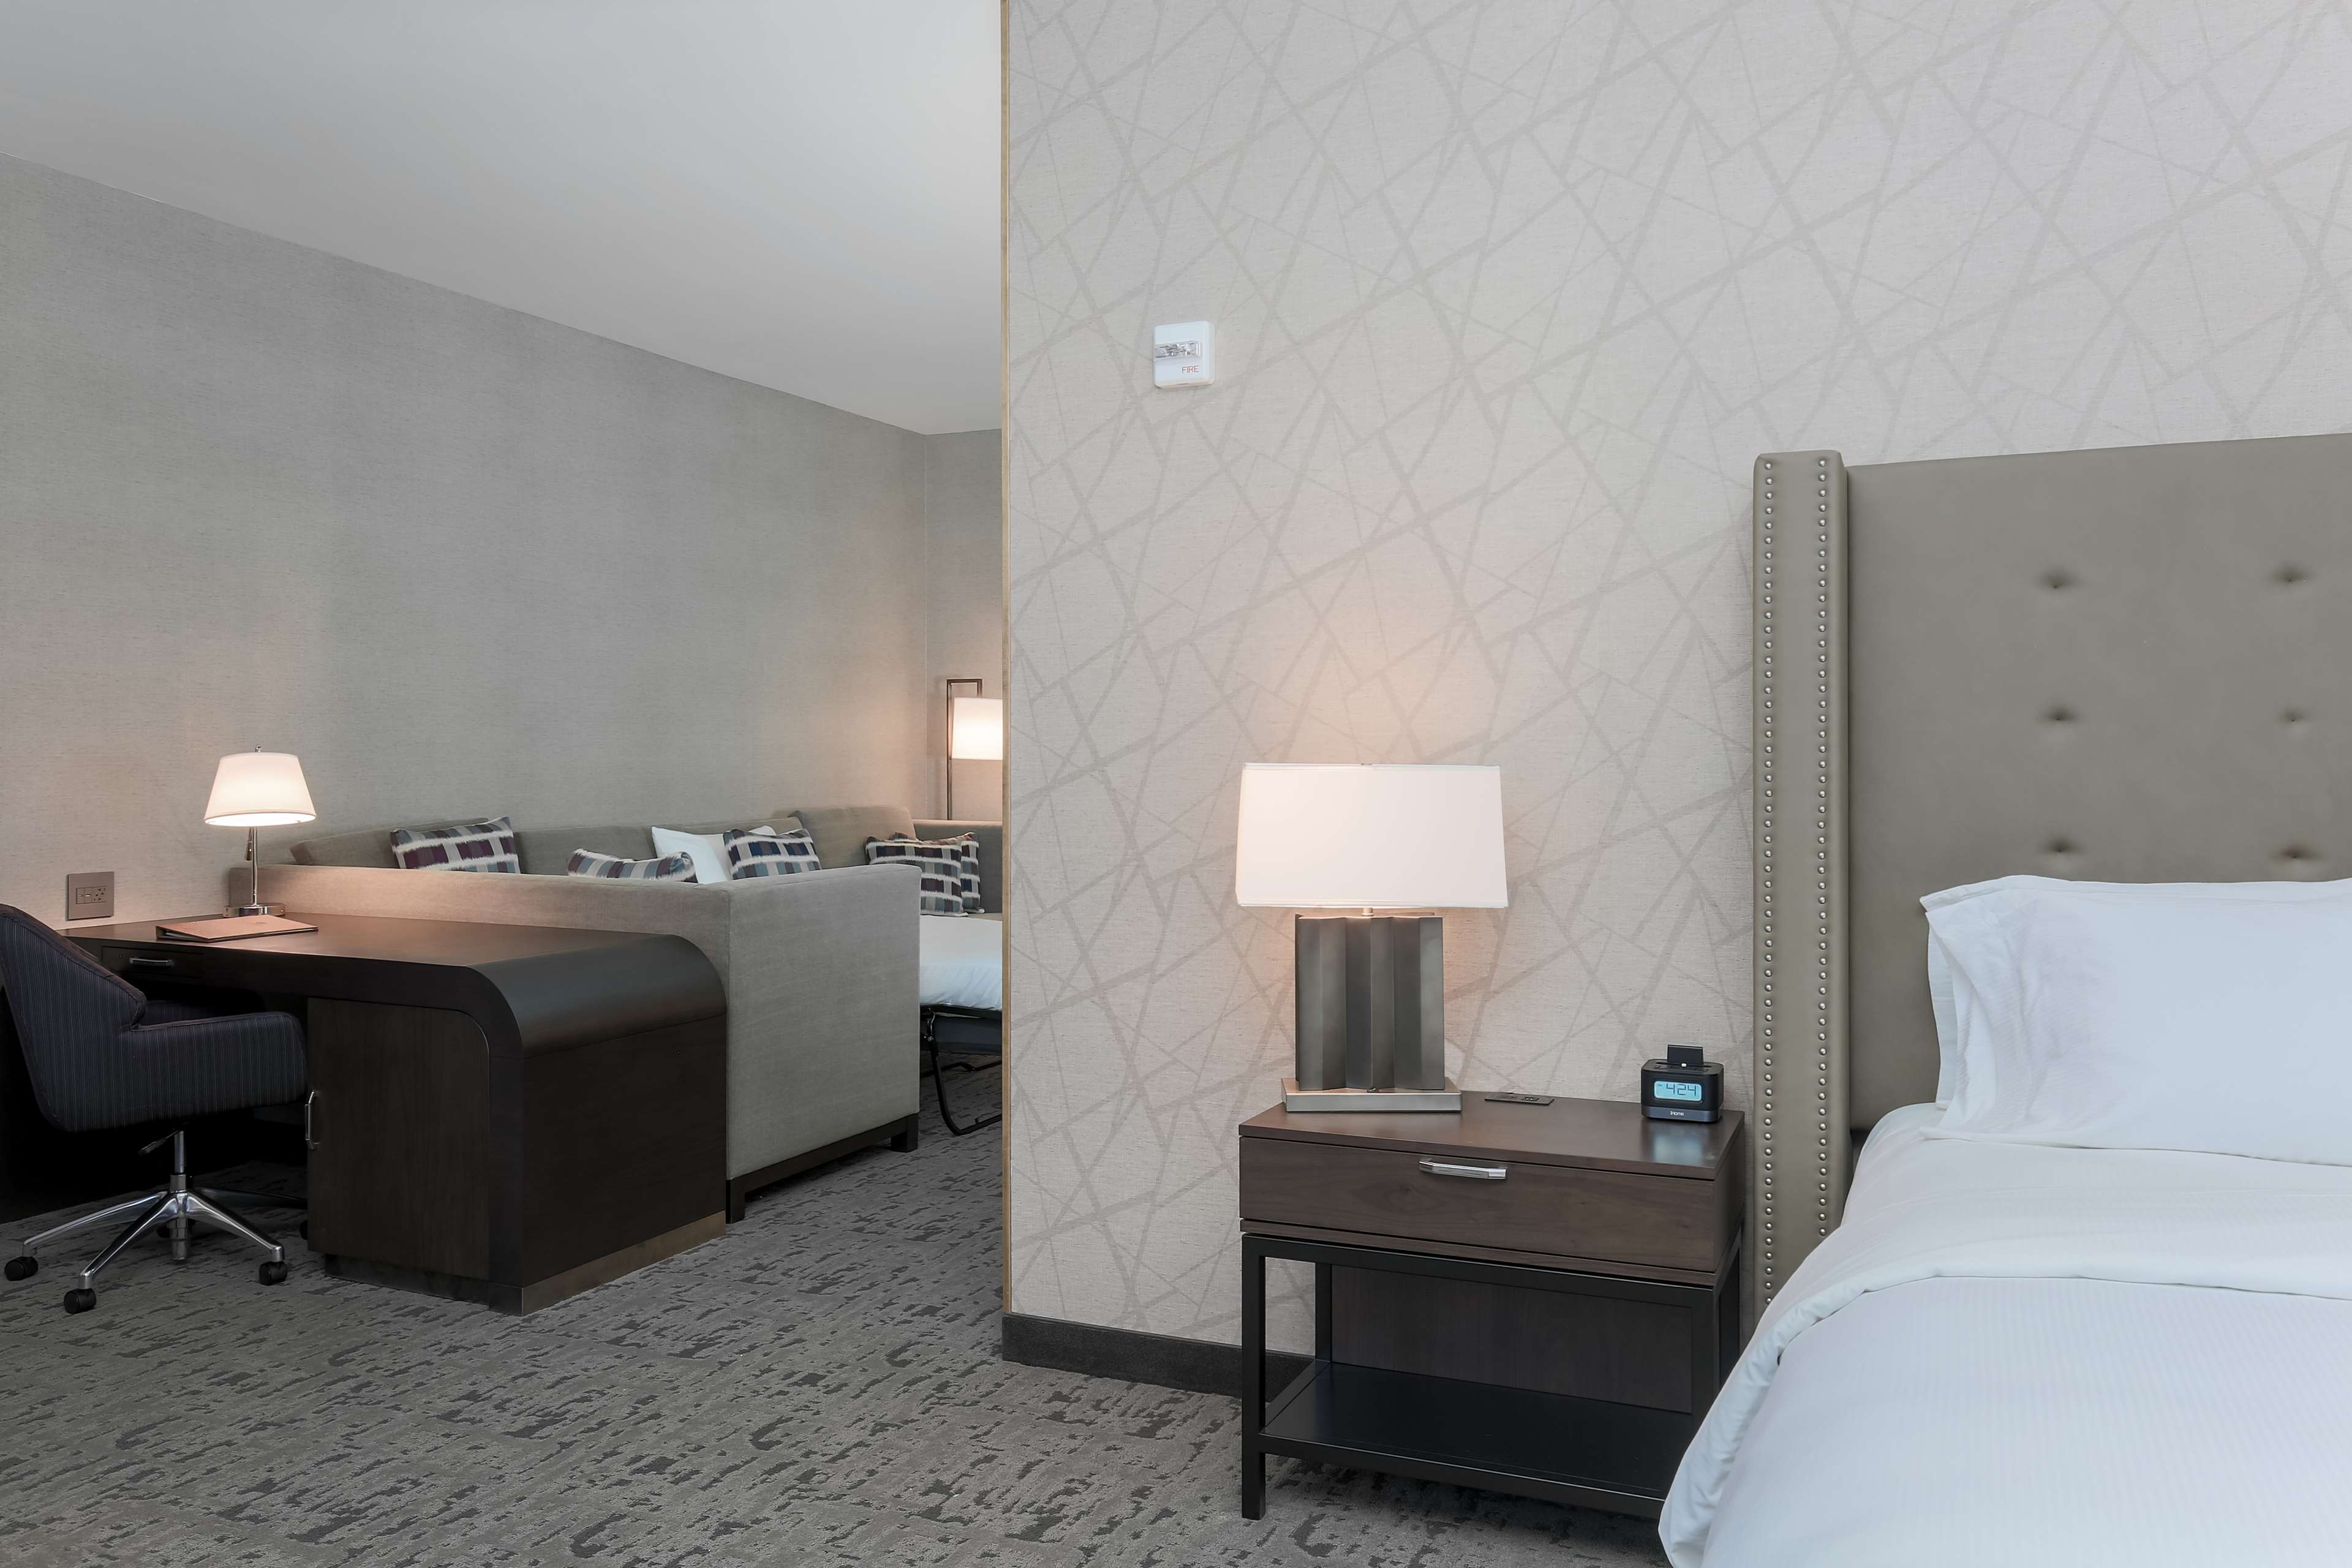 DoubleTree by Hilton Evansville image 48